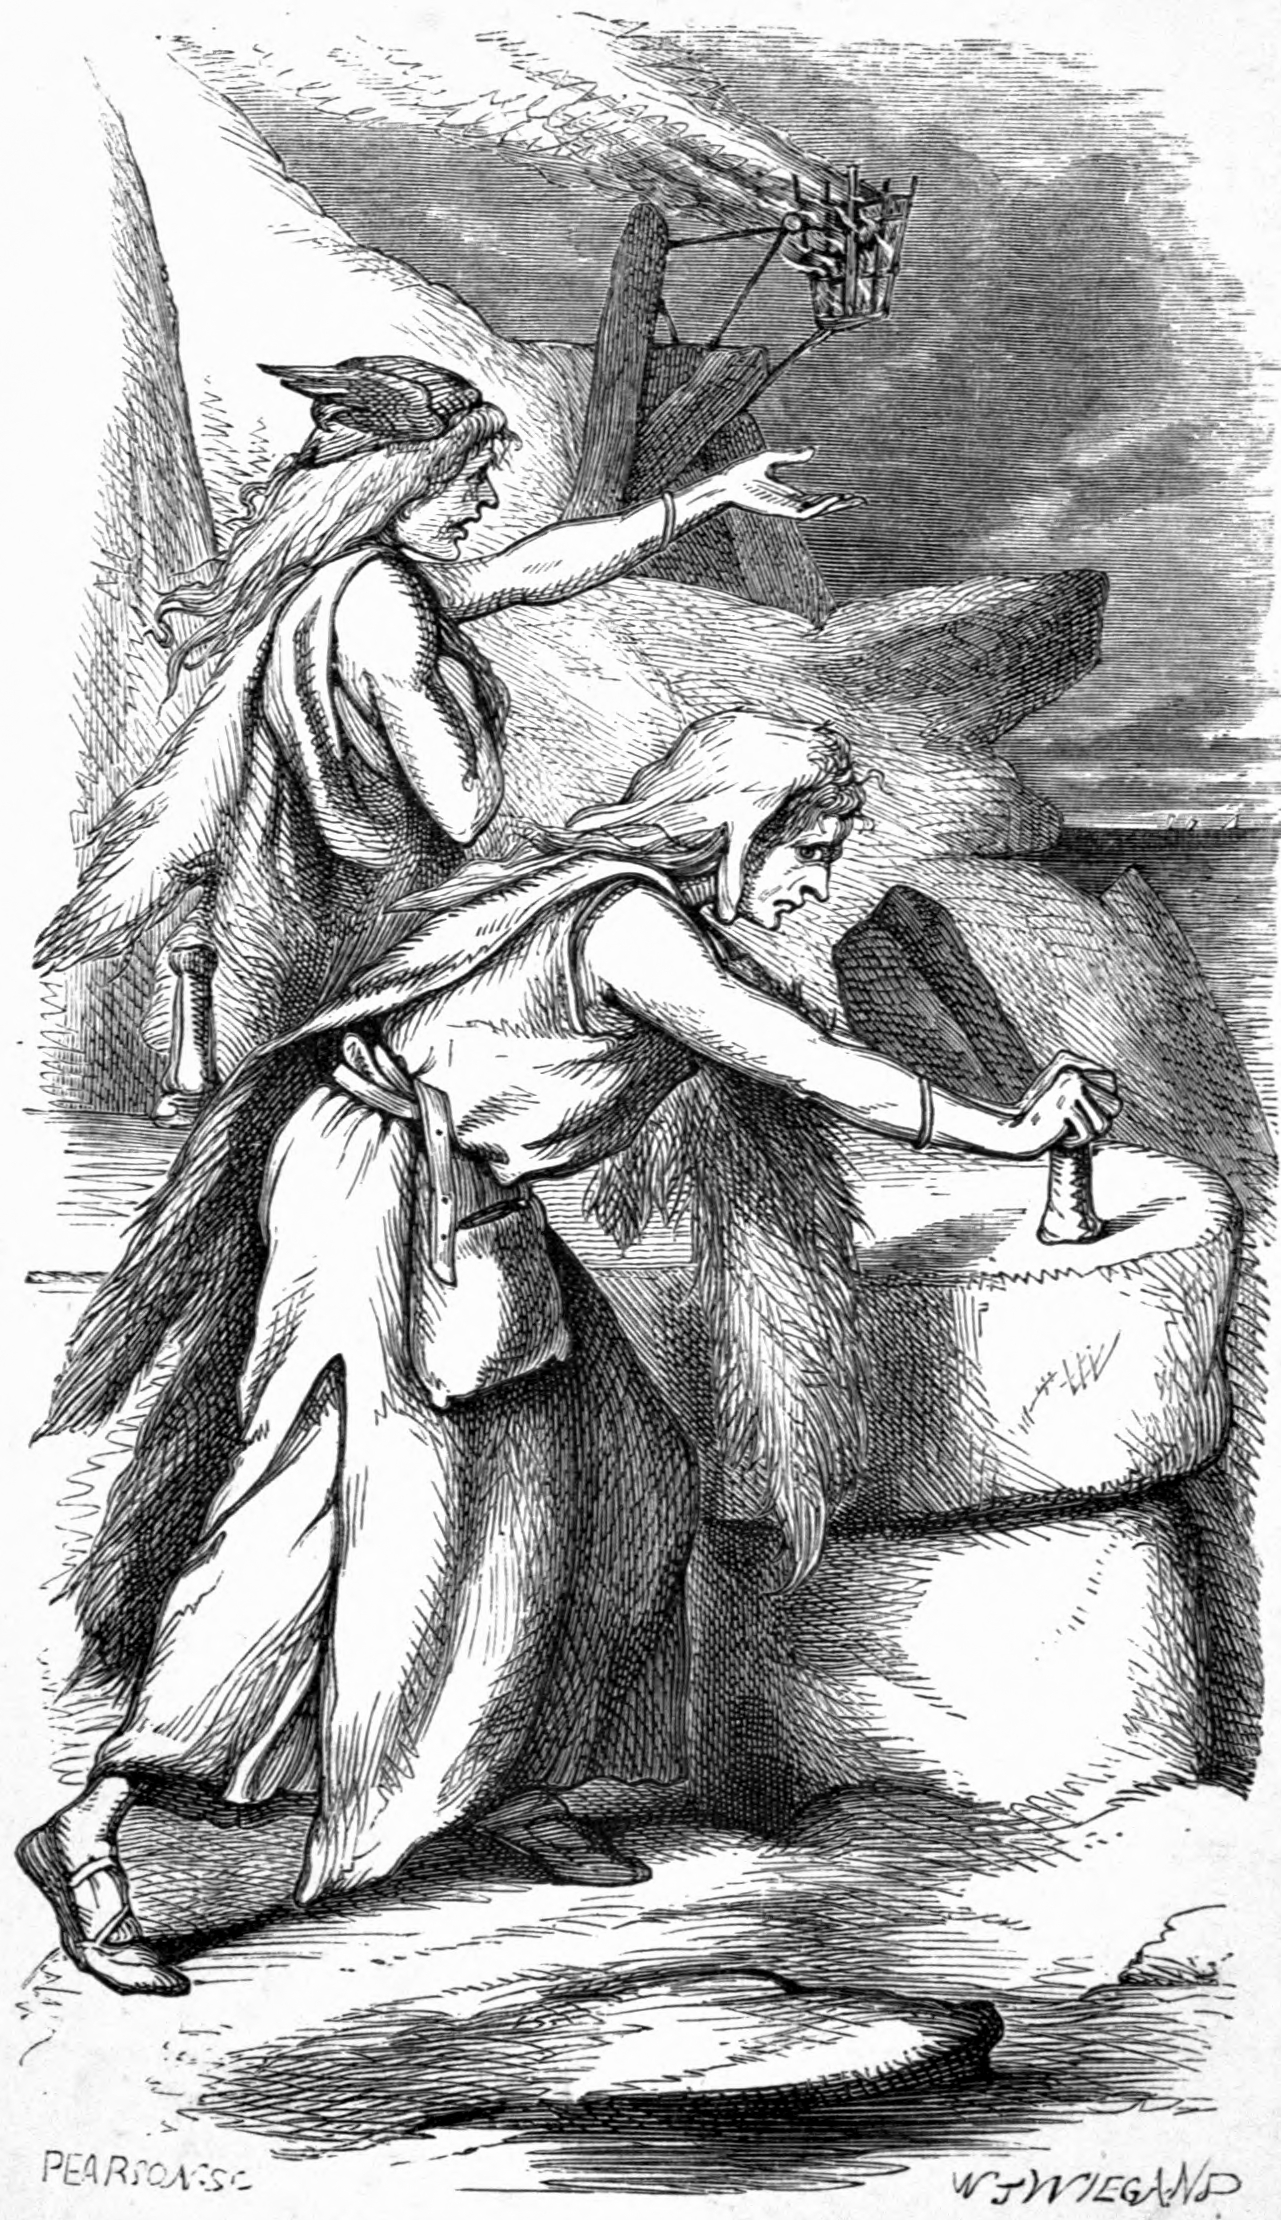 Grottasongr Is The Work Song Of Two Young Slave Girls Bought In Sweden By Danish King Frodi Are Brought To A Magic Grind Stone Out